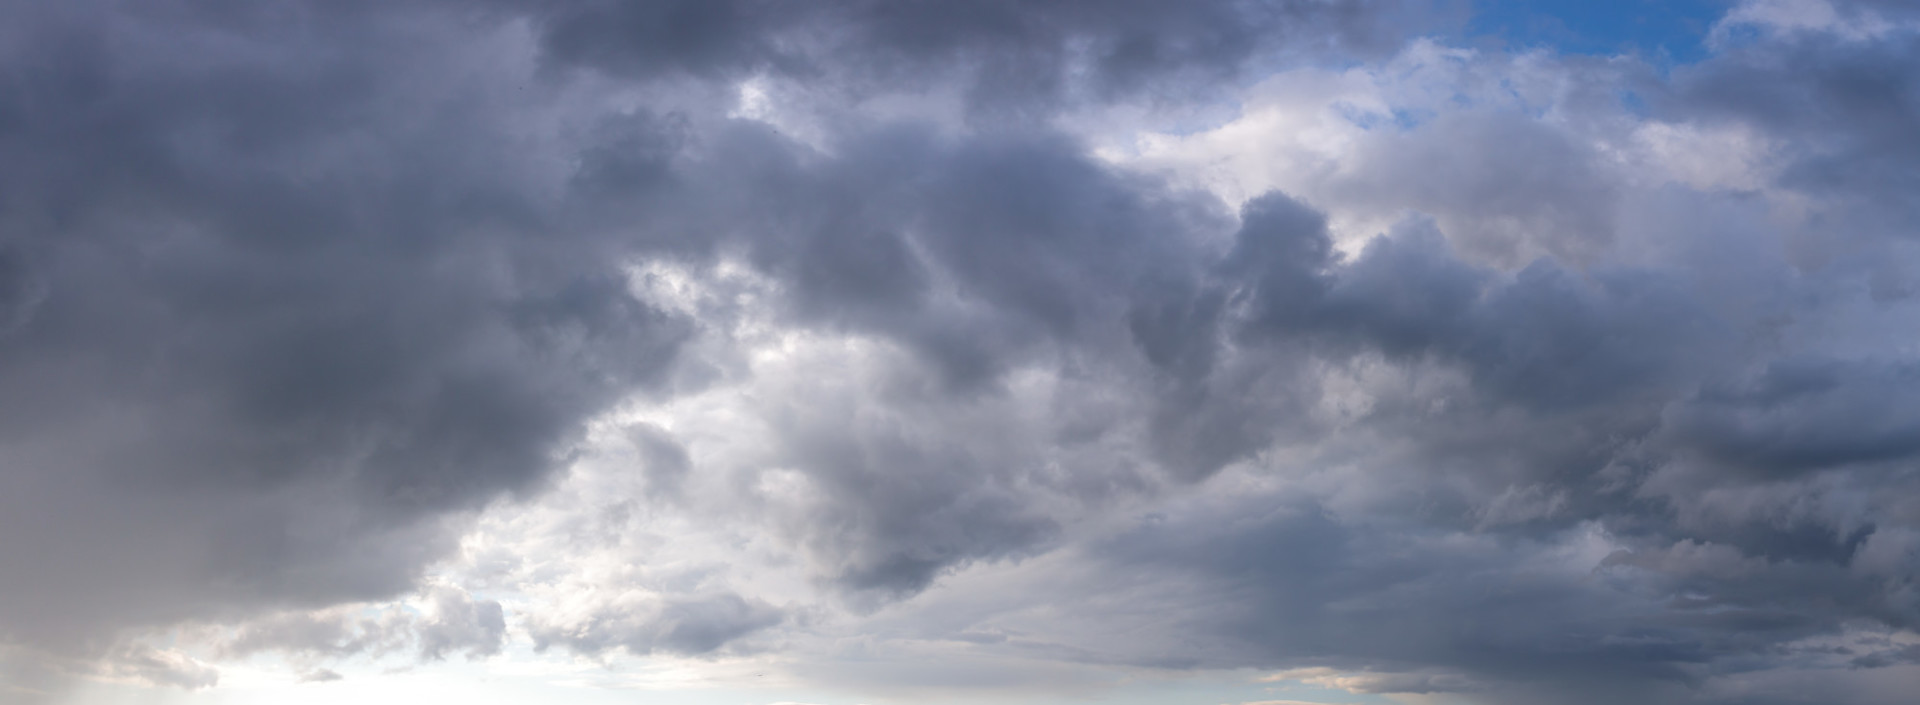 Stormy cloudy sky panorama background for sky replacement